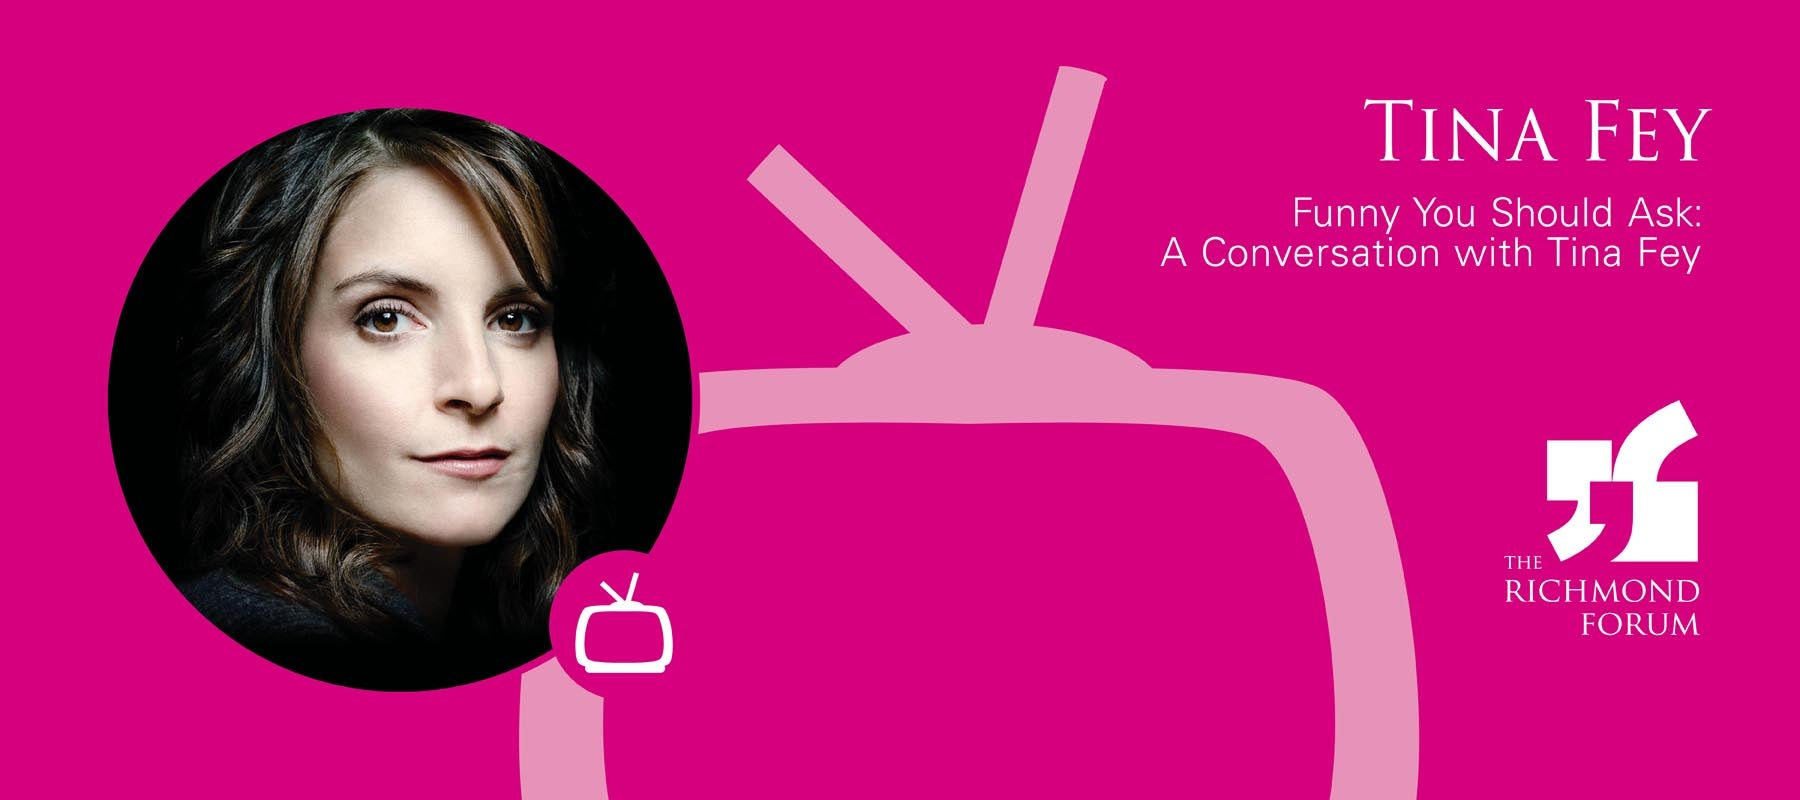 The Richmond Forum Presents Tina Fey